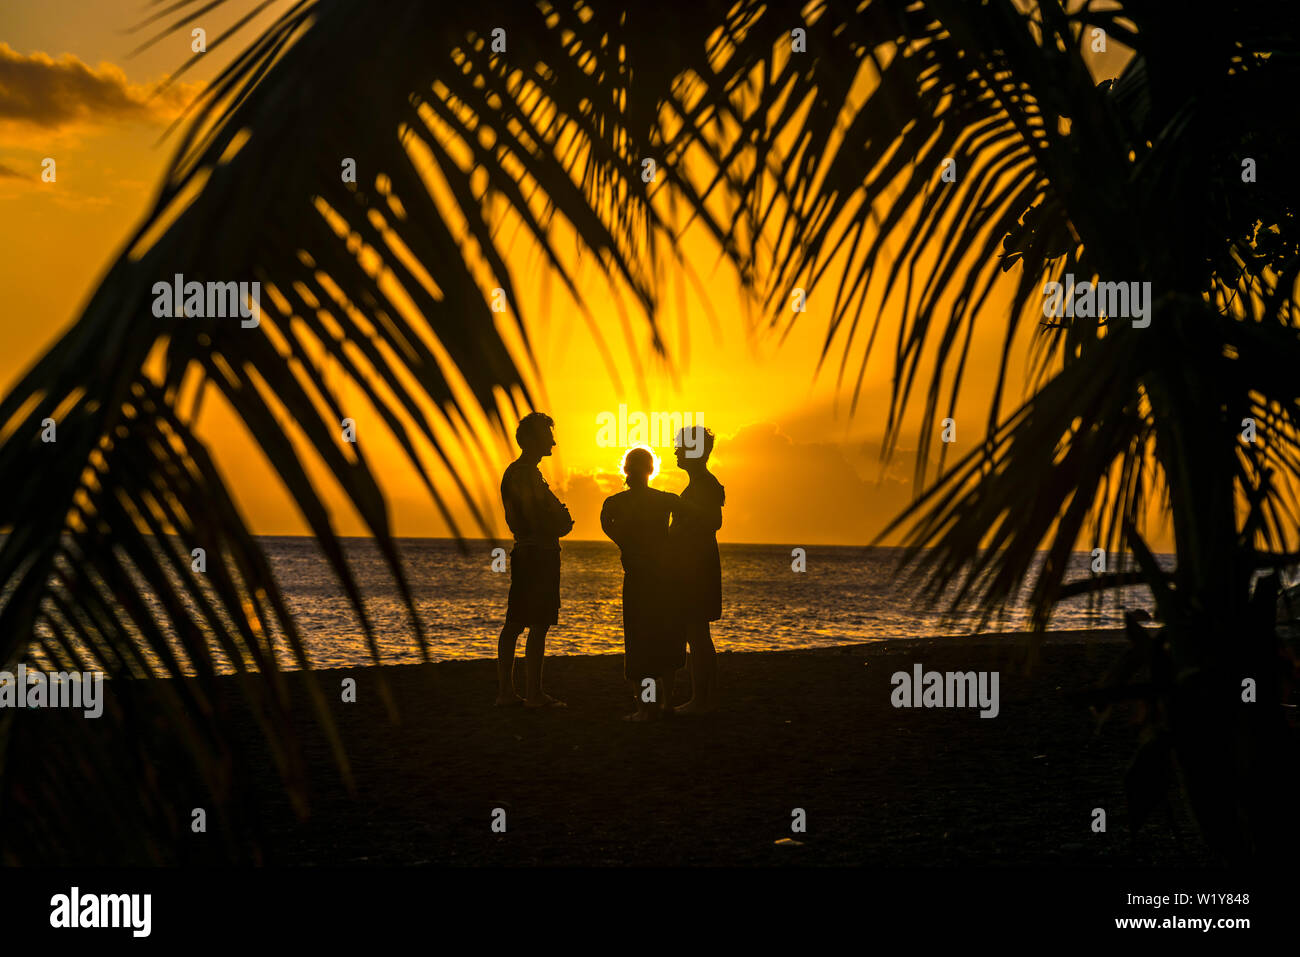 Sonnenuntergang am Strand unter Palmen am Meer, Guadeloupe, Frankreich  |  sunset under palm trees at he beach in Guadeloupe, France Stock Photo